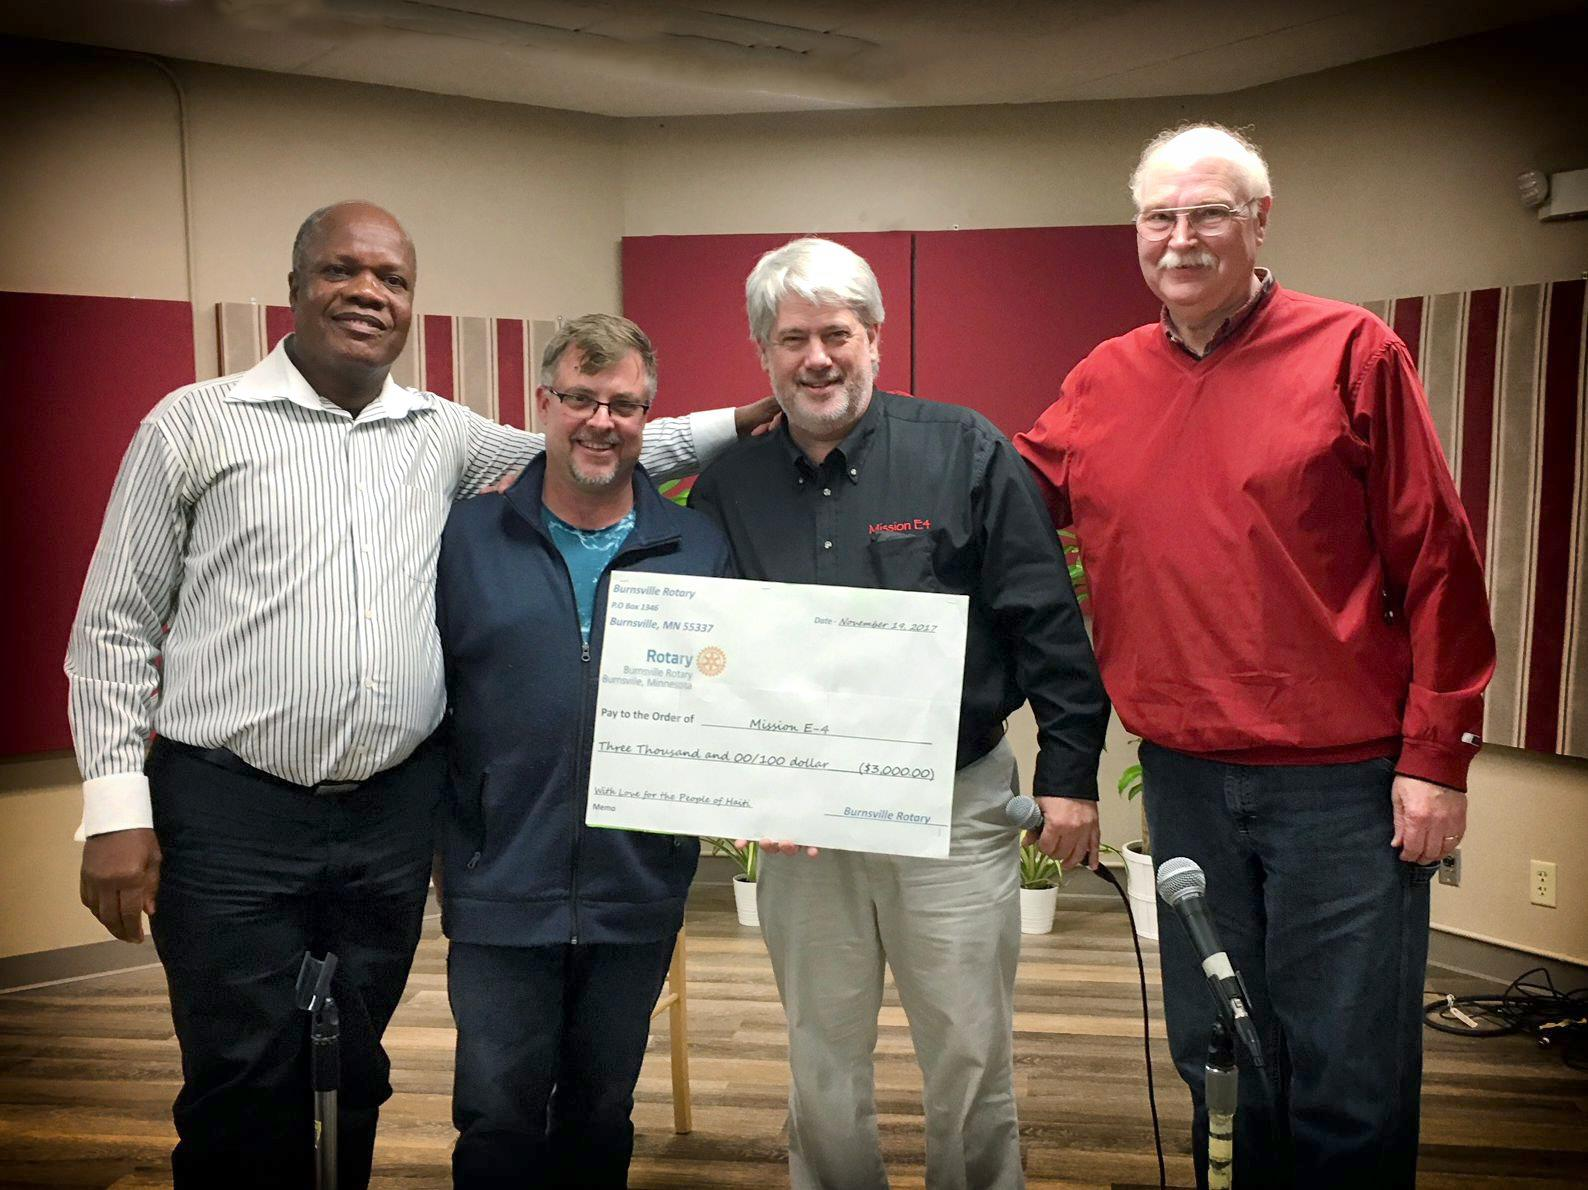 Burnsville Rotary presents check to Mission E-4